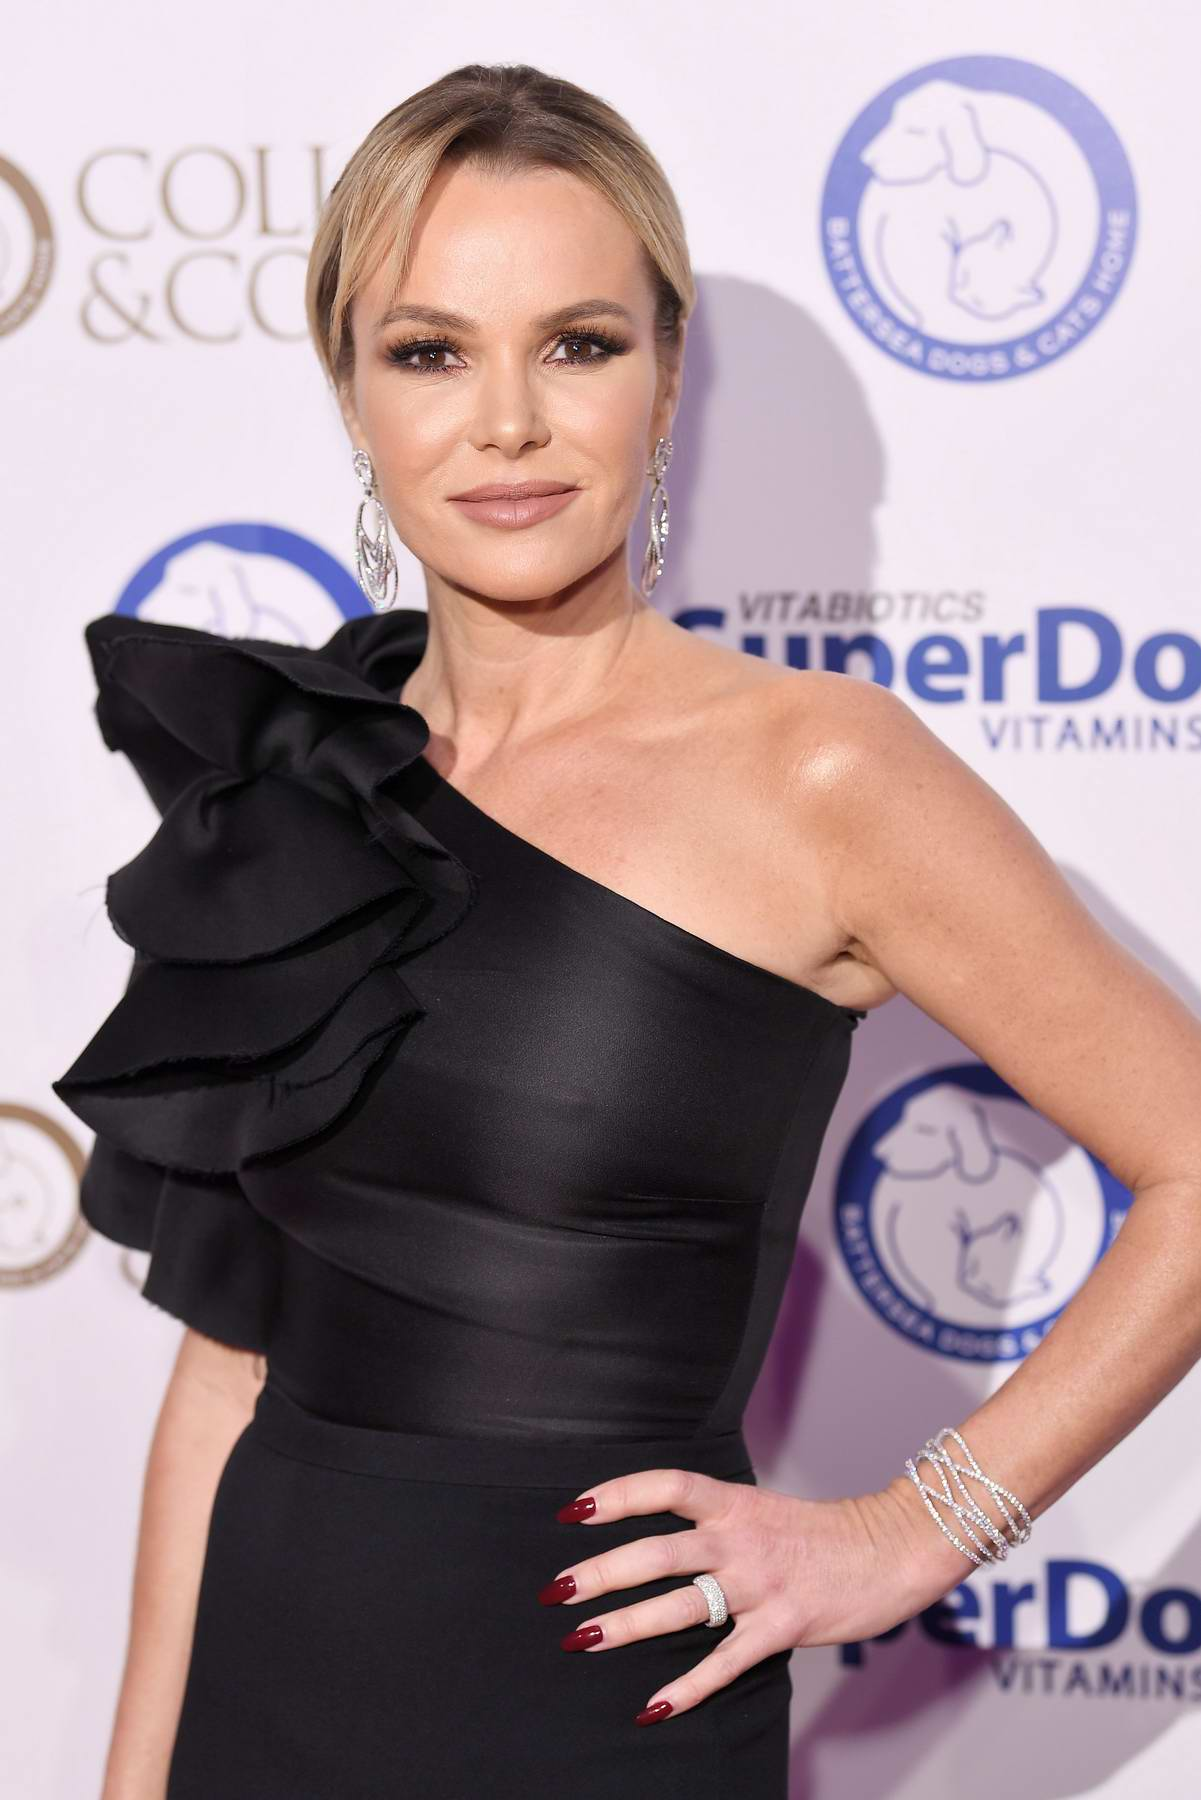 Amanda Holden at the Collars & Coats gala ball in London